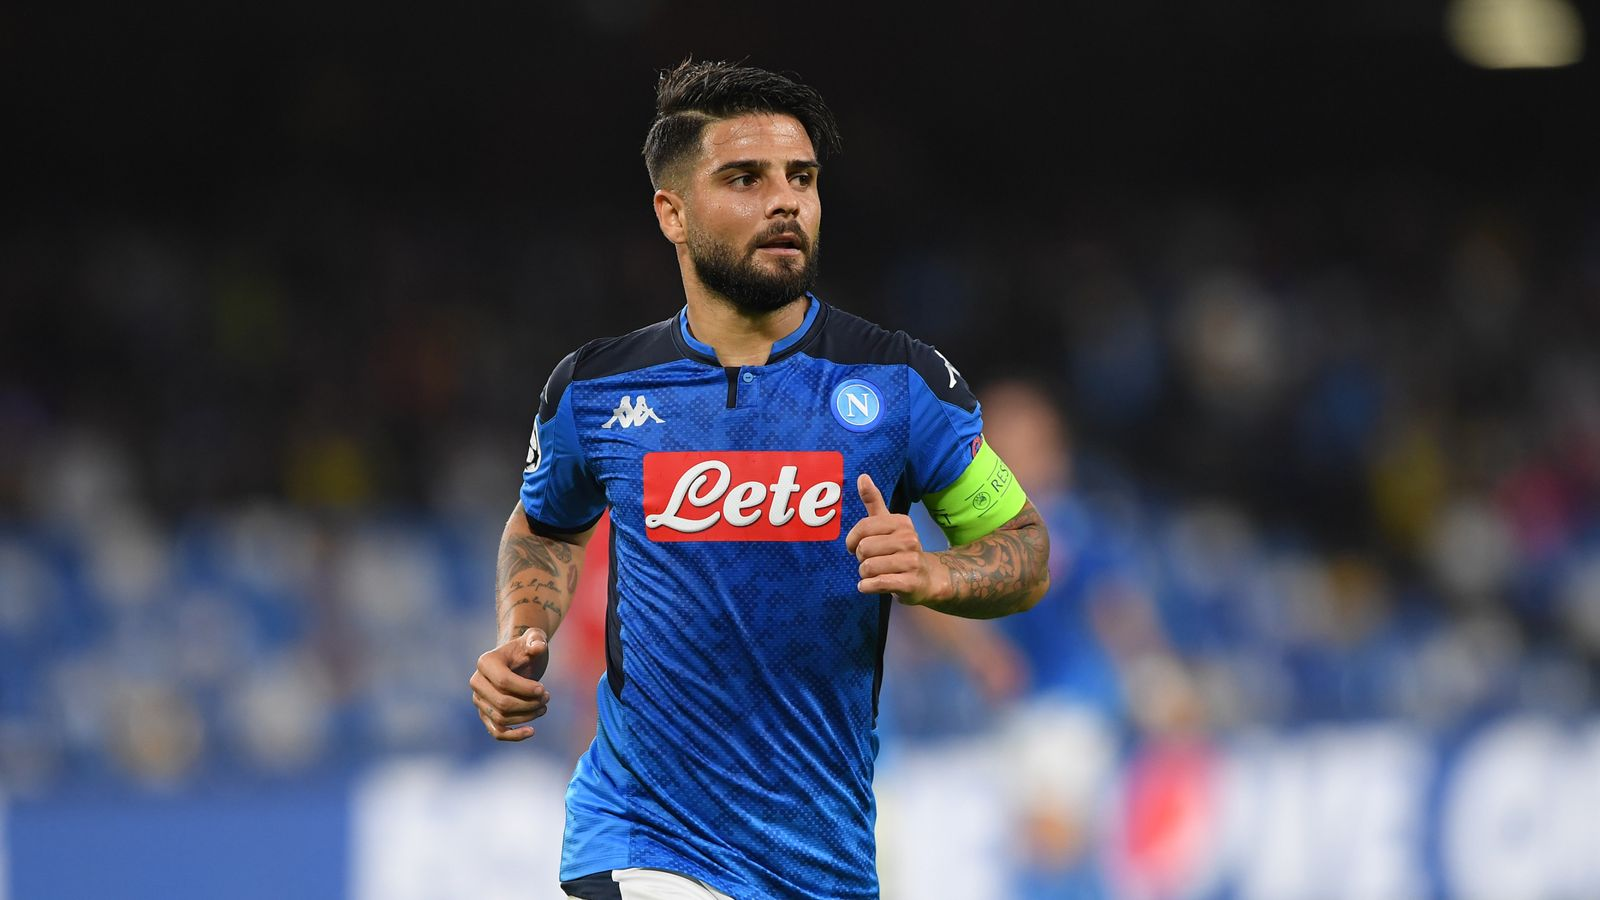 Napoli Players In Liverpool For Champions League Game Informed Of Fines For Missed Training Camp Football News Sky Sports